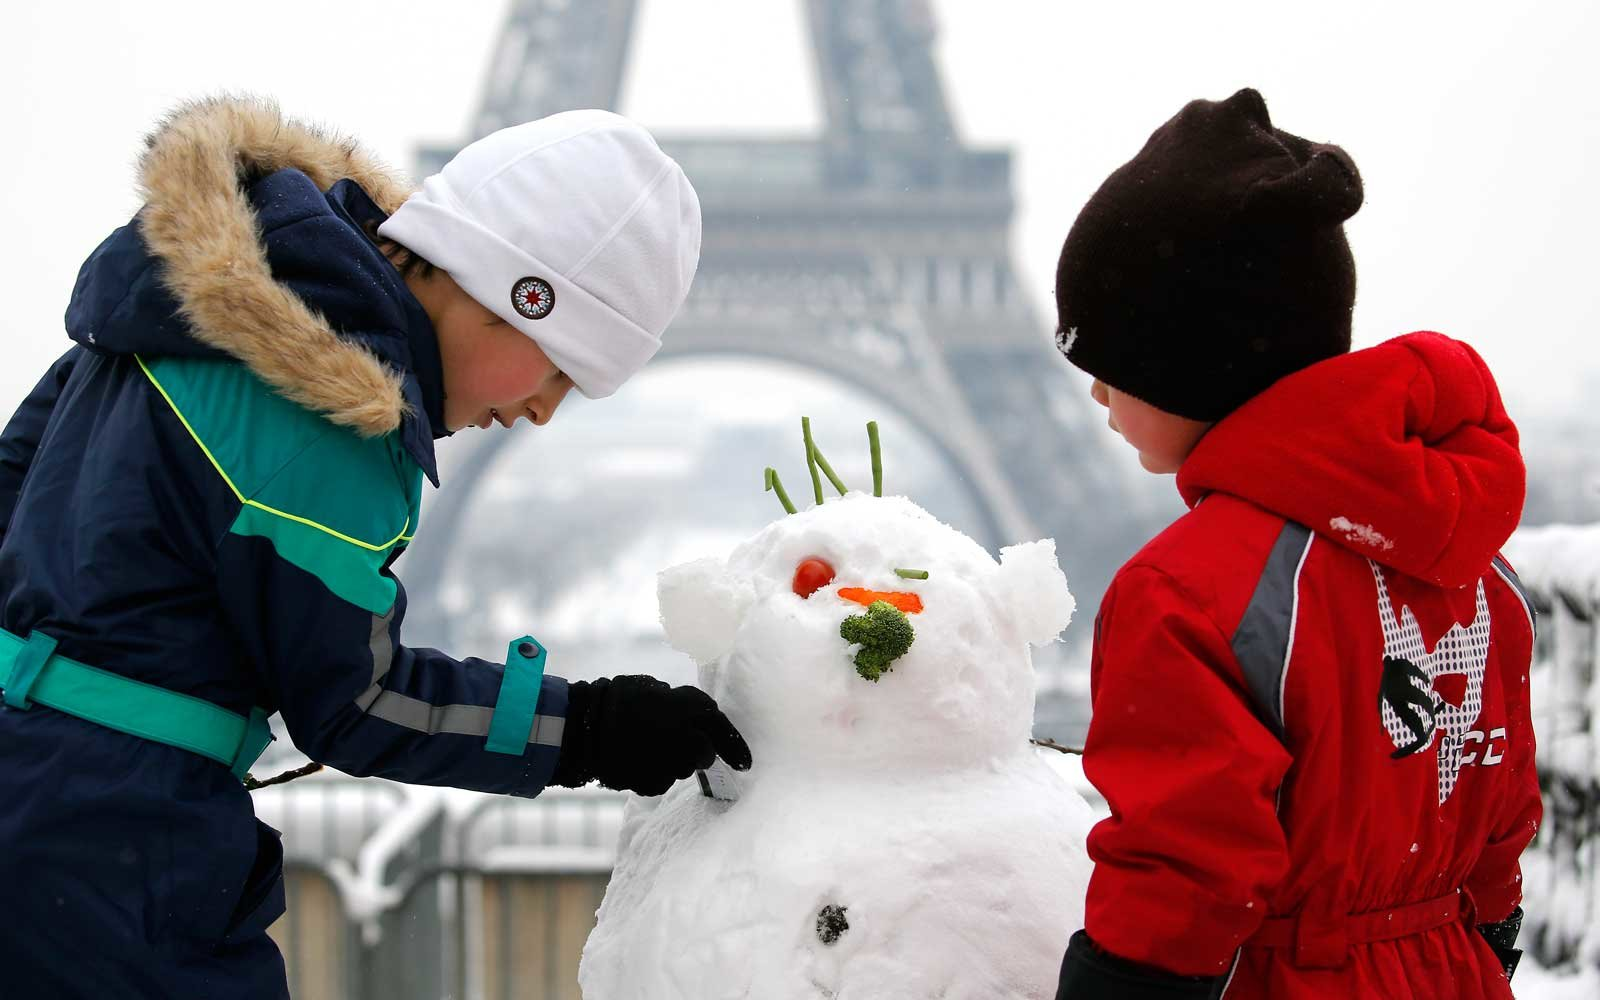 Children make a snowman in front of the Eiffel Tower